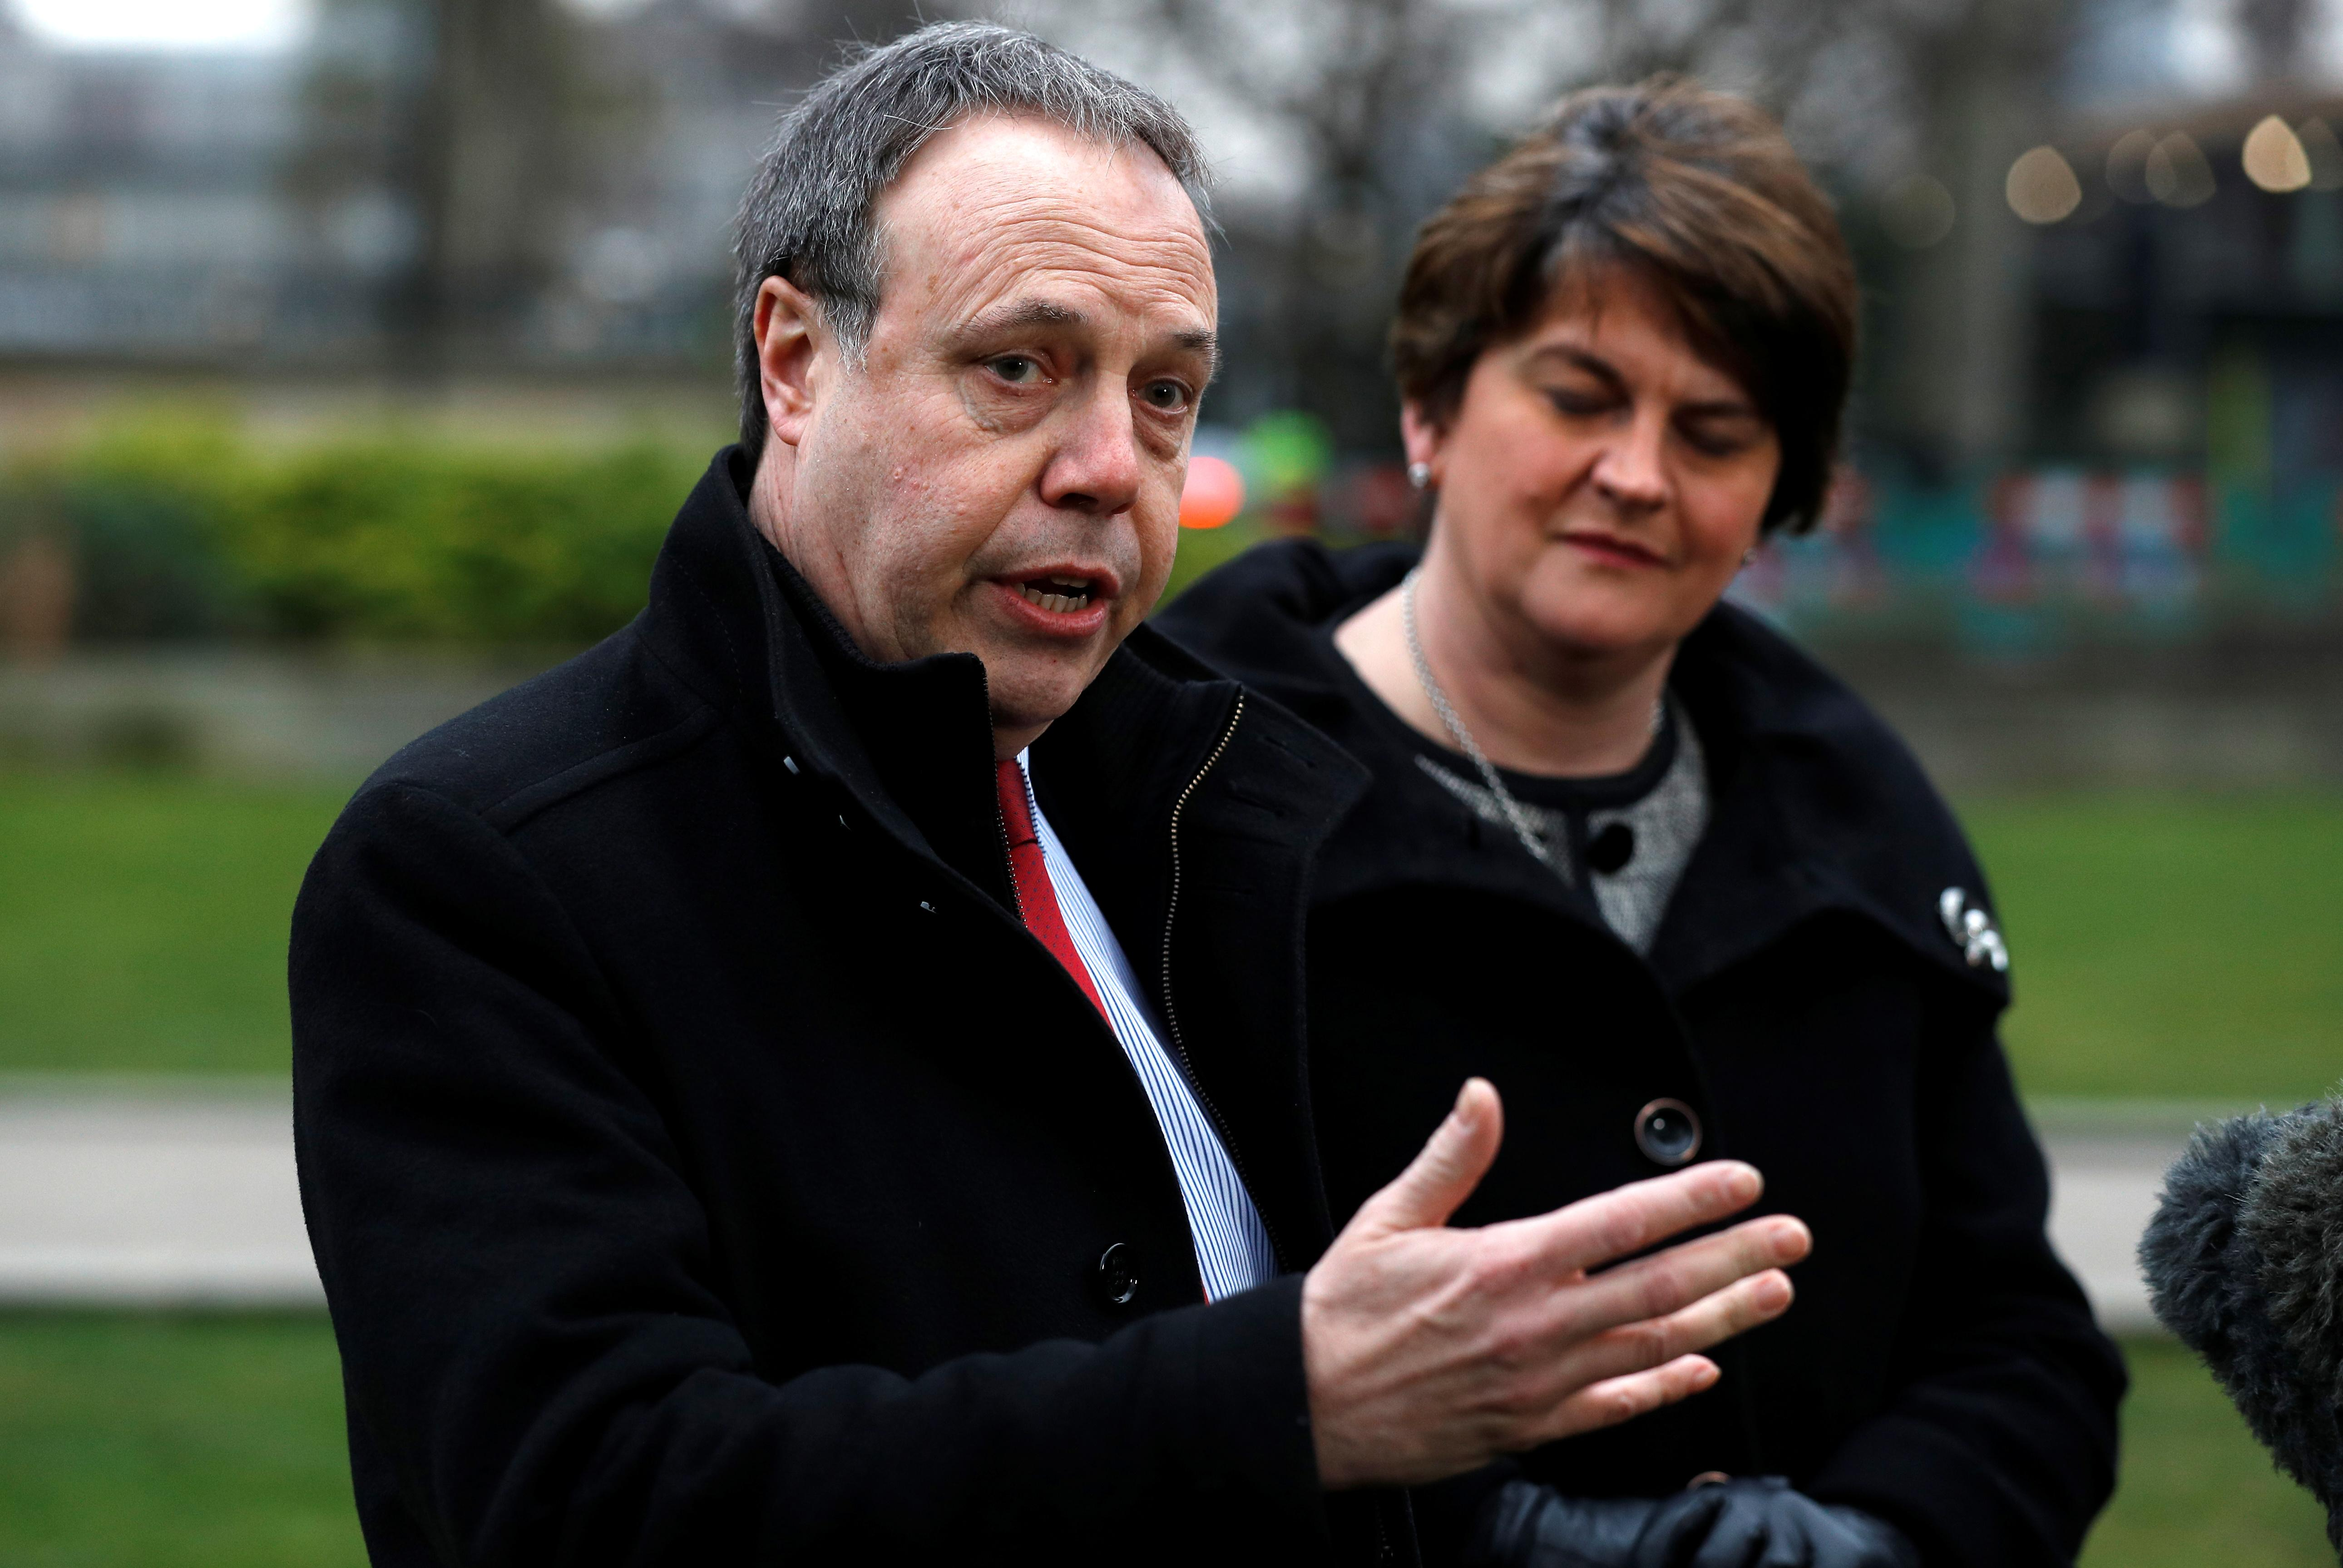 Northern Ireland's DUP says proposed Irish border arrangements 'will not go anywhere'